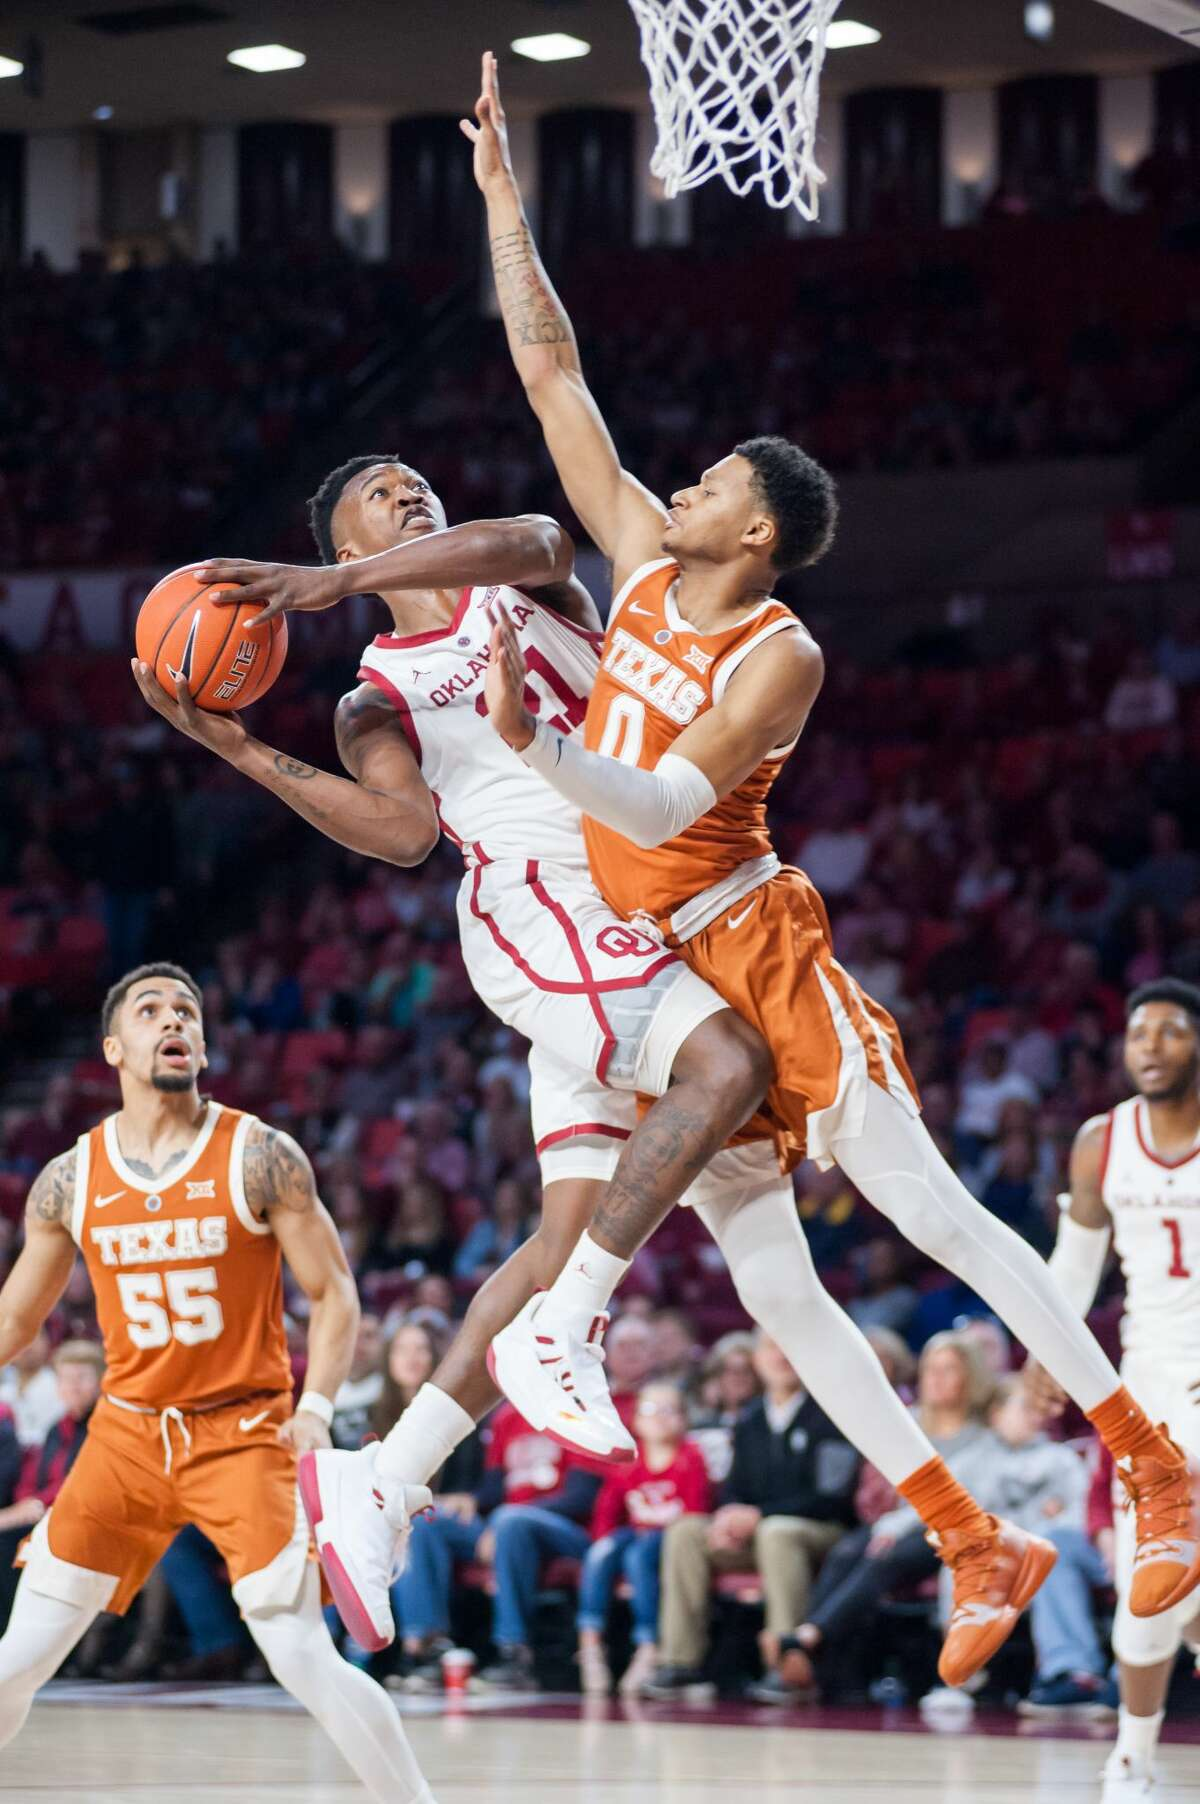 NORMAN, OK - FEBRUARY 23: Oklahoma Sooners (21) Kristian Doolittle going up for two points while Texas (0) Gerald Liddell plays defense on February 23, 2019, at the Lloyd Noble Center in Norman, Oklahoma (Photo by Torrey Purvey/Icon Sportswire via Getty Images)